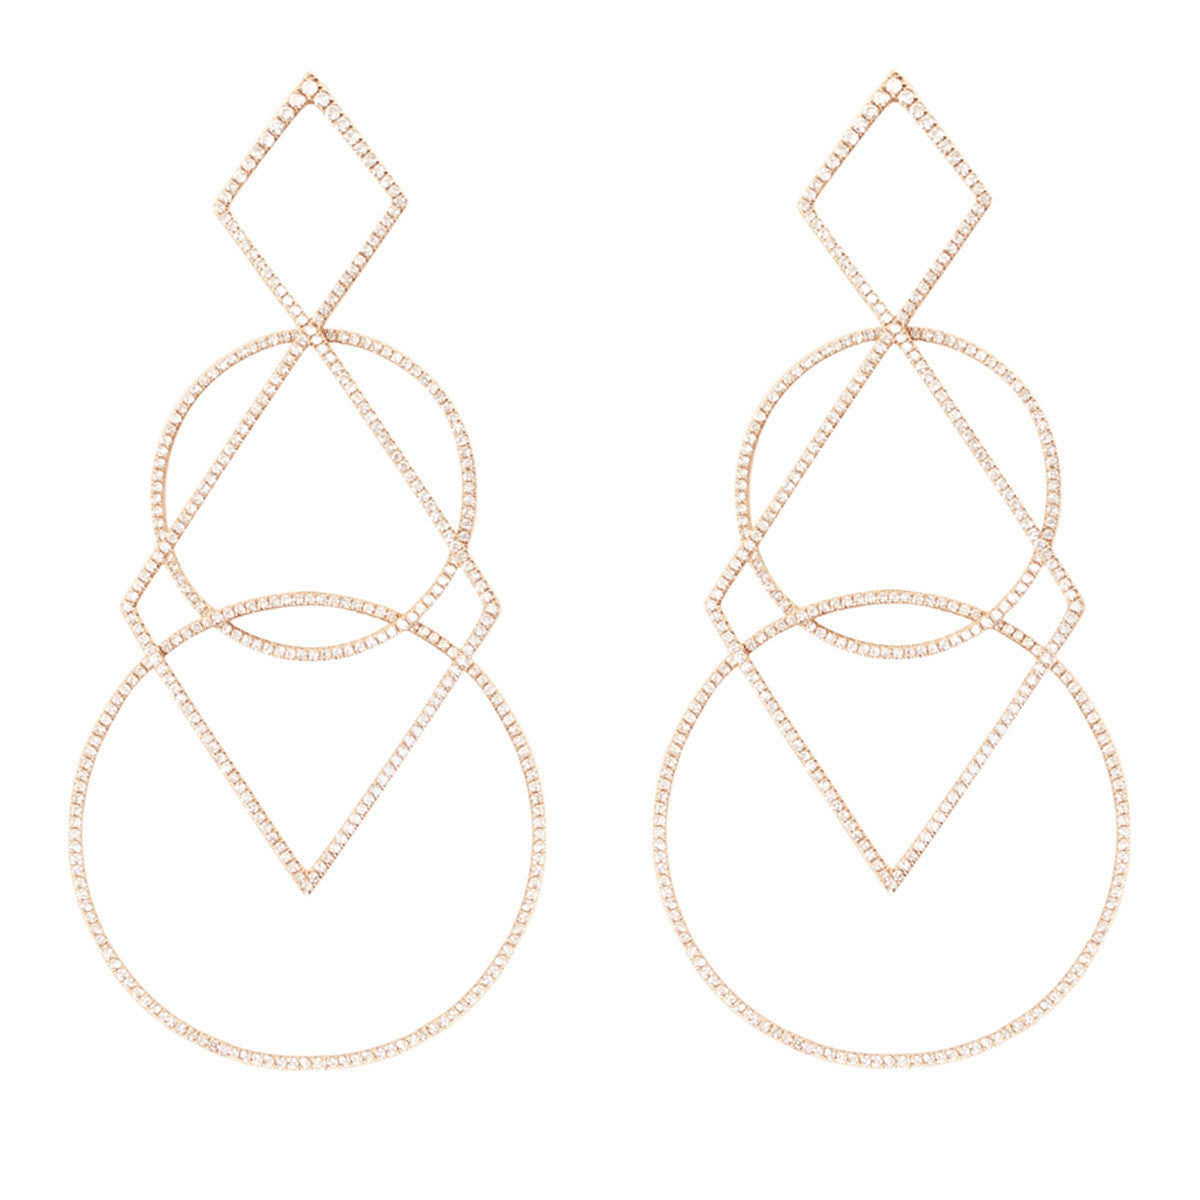 bhgoodlifeproducts becky bh shopphotos earrings products higgins geometric